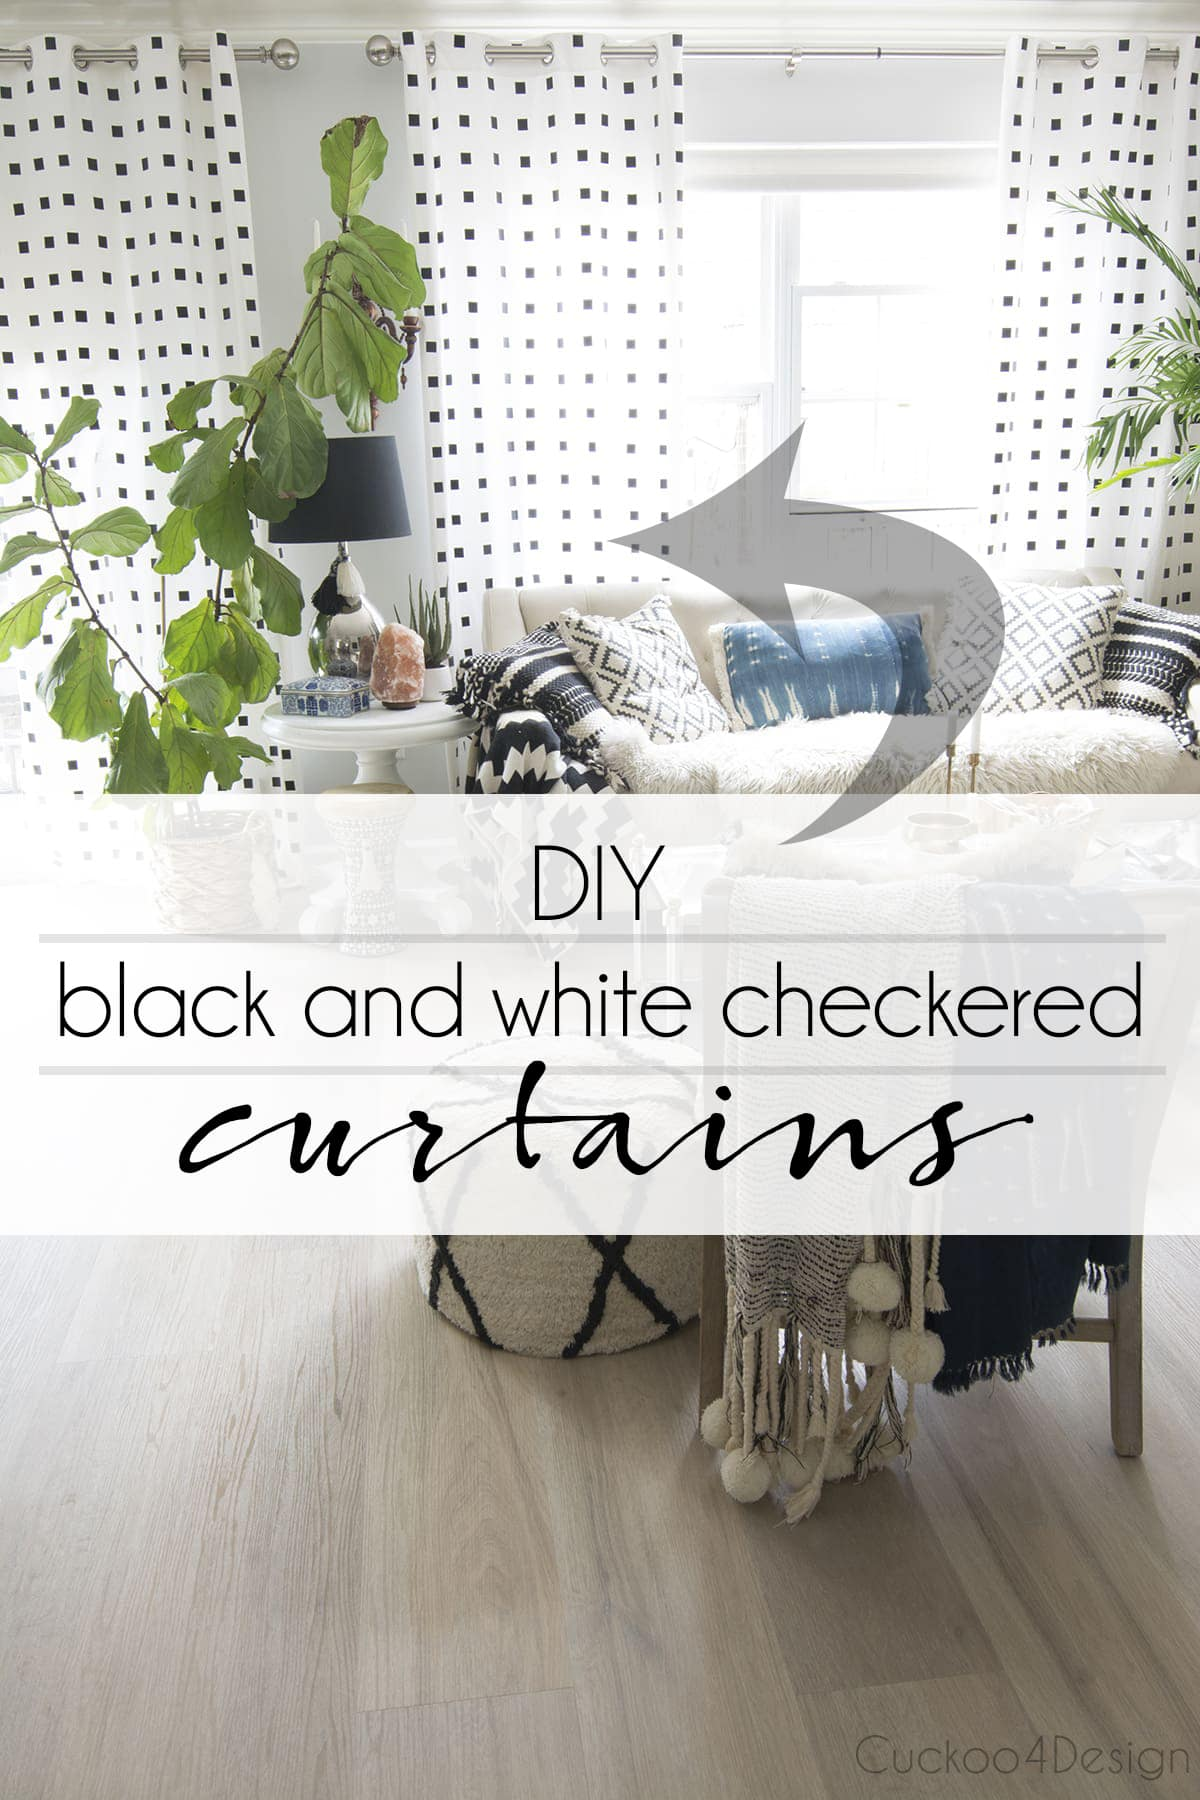 DIY back and white checkered curtains